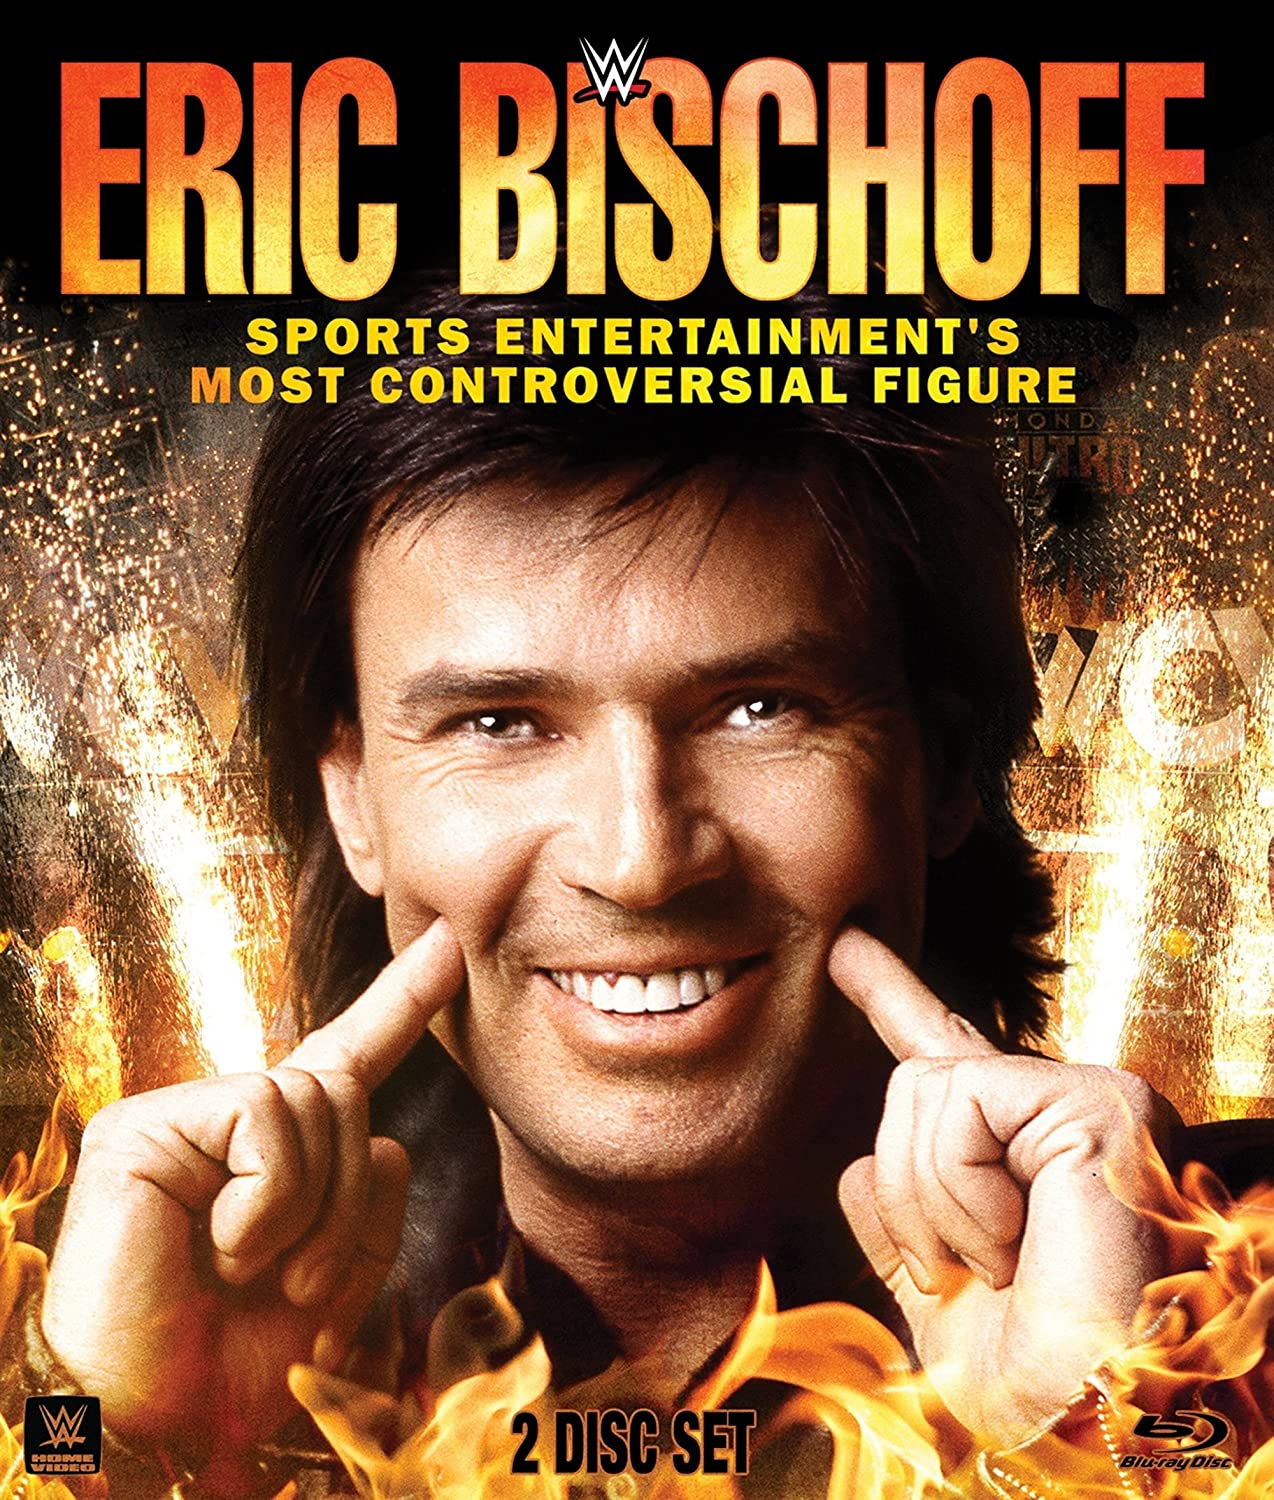 5 ☆ very popular WWE: Eric Luxury goods Bischoff: Sports Entertainment's Controversial Fi Most